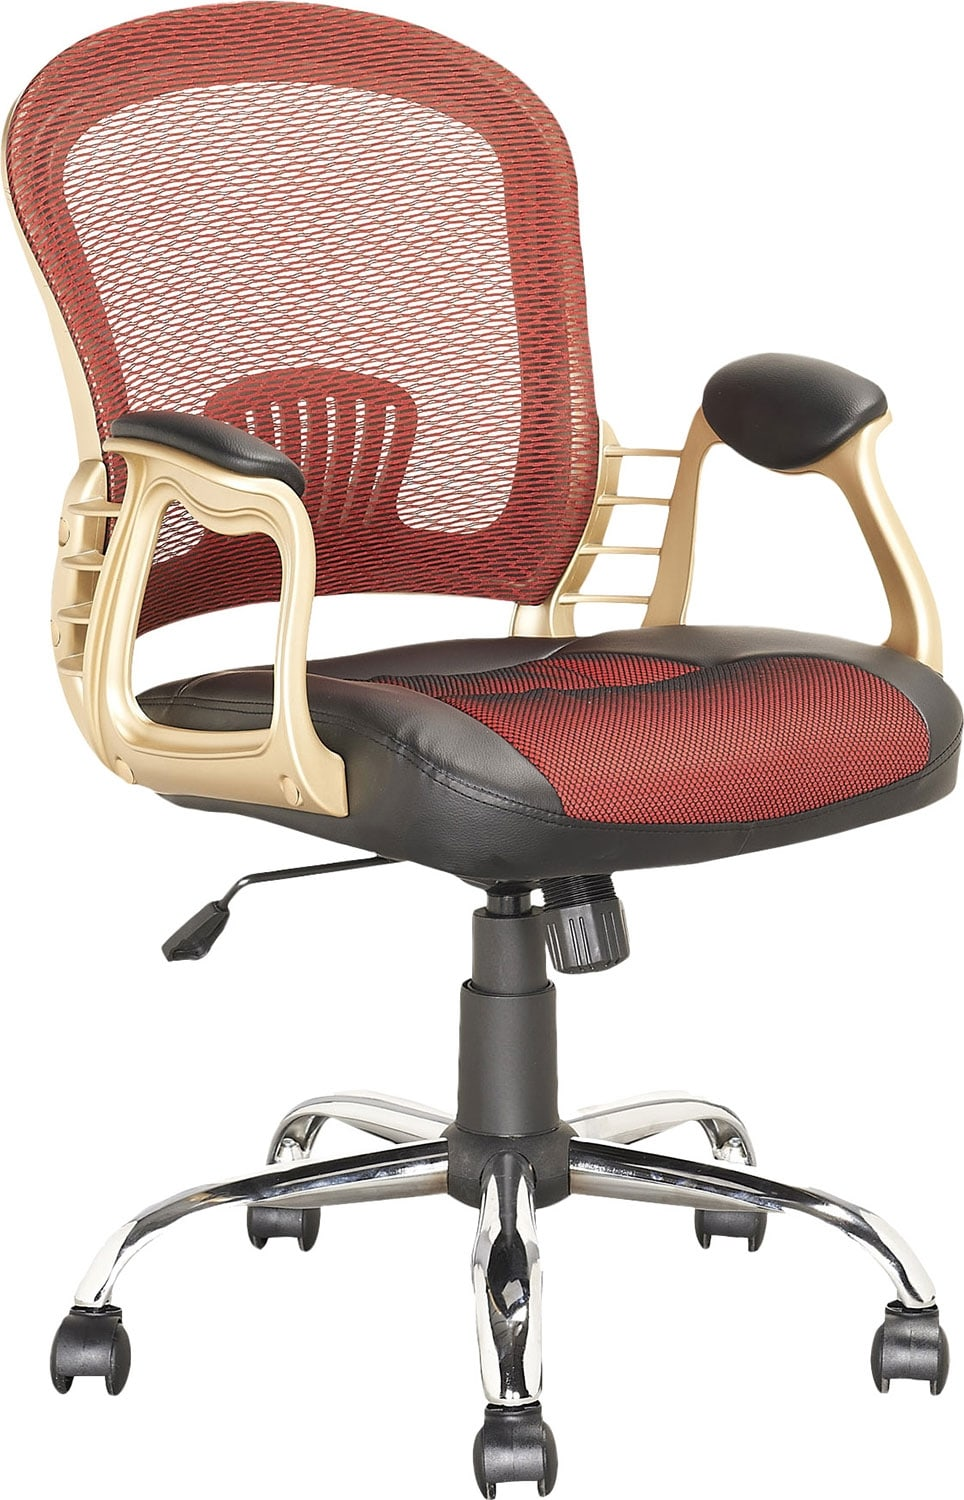 Jacksonville Leatherette and Mesh Executive Office Chair